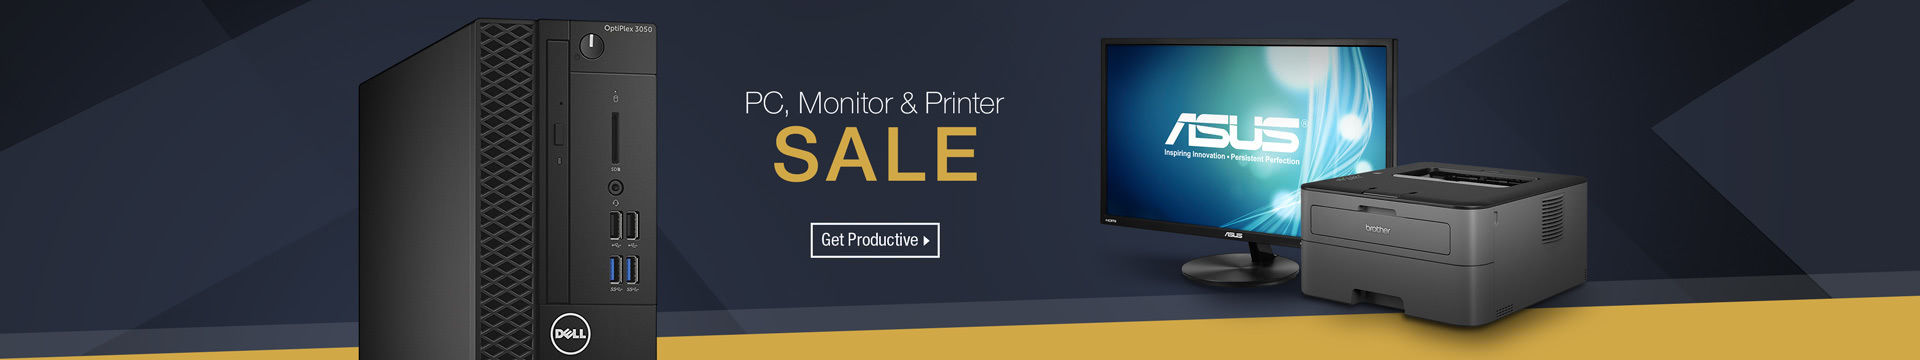 PCs, Monitors & Printers Sale